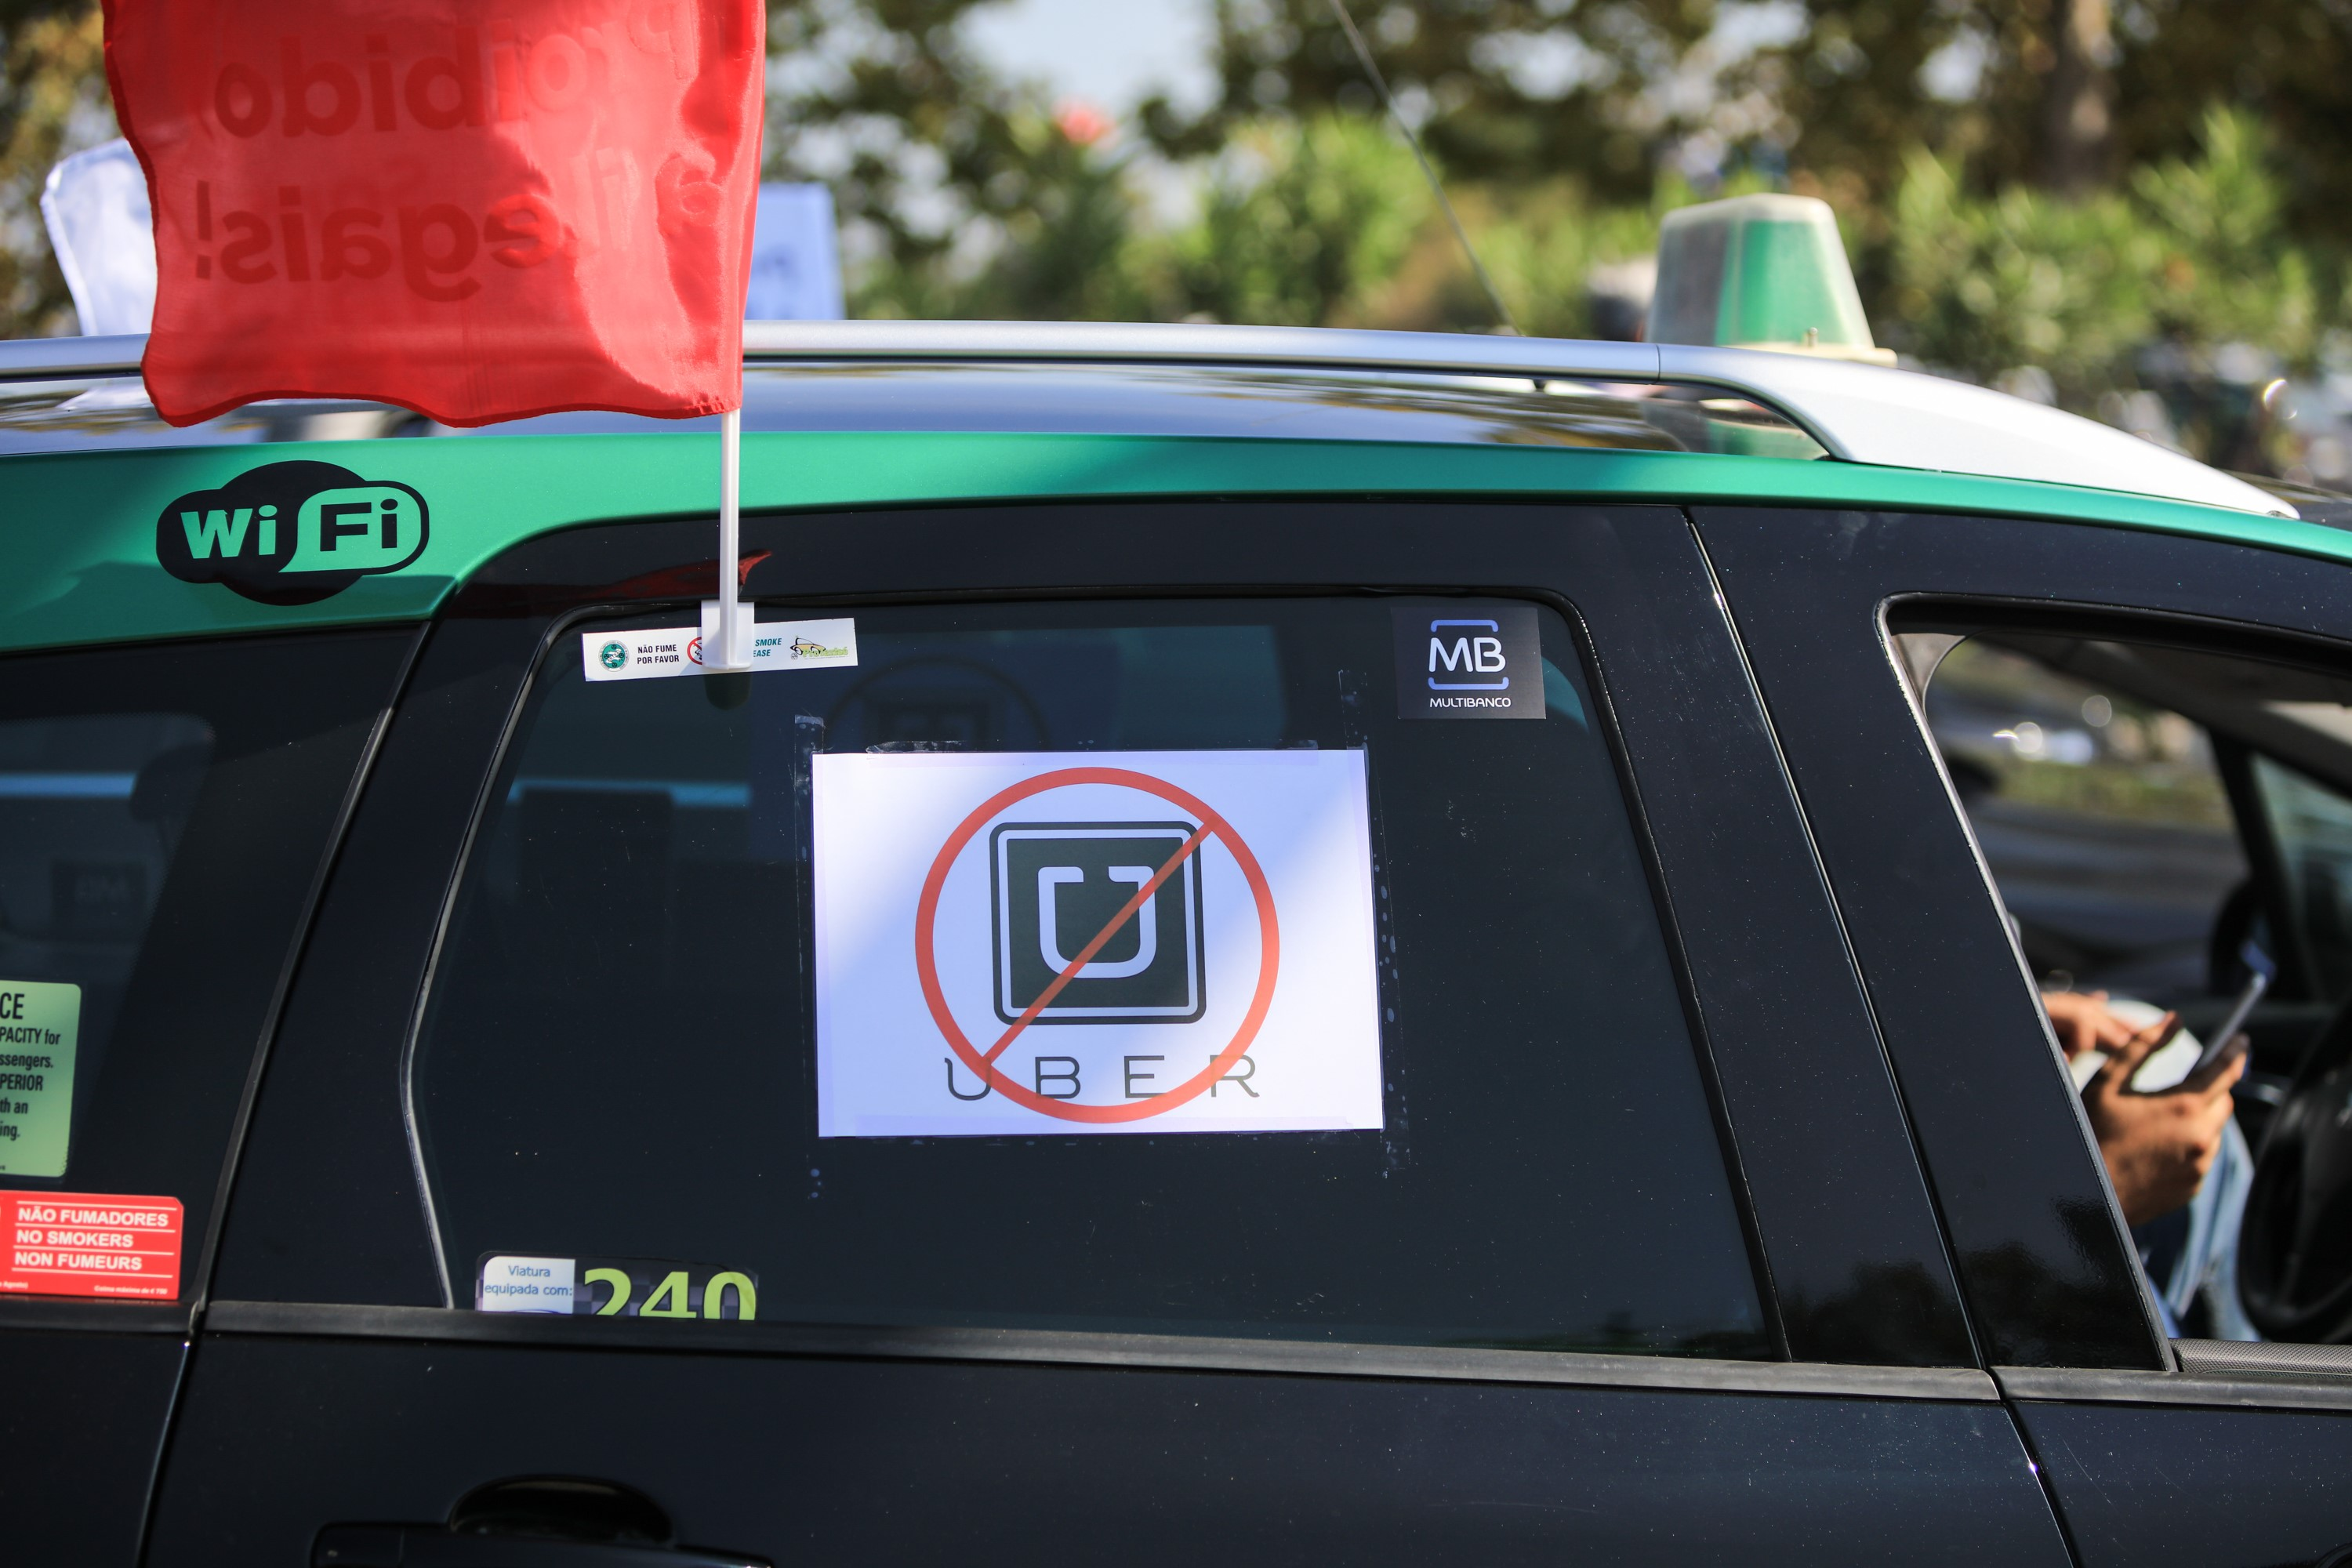 Portuguese taxis protest against Uber